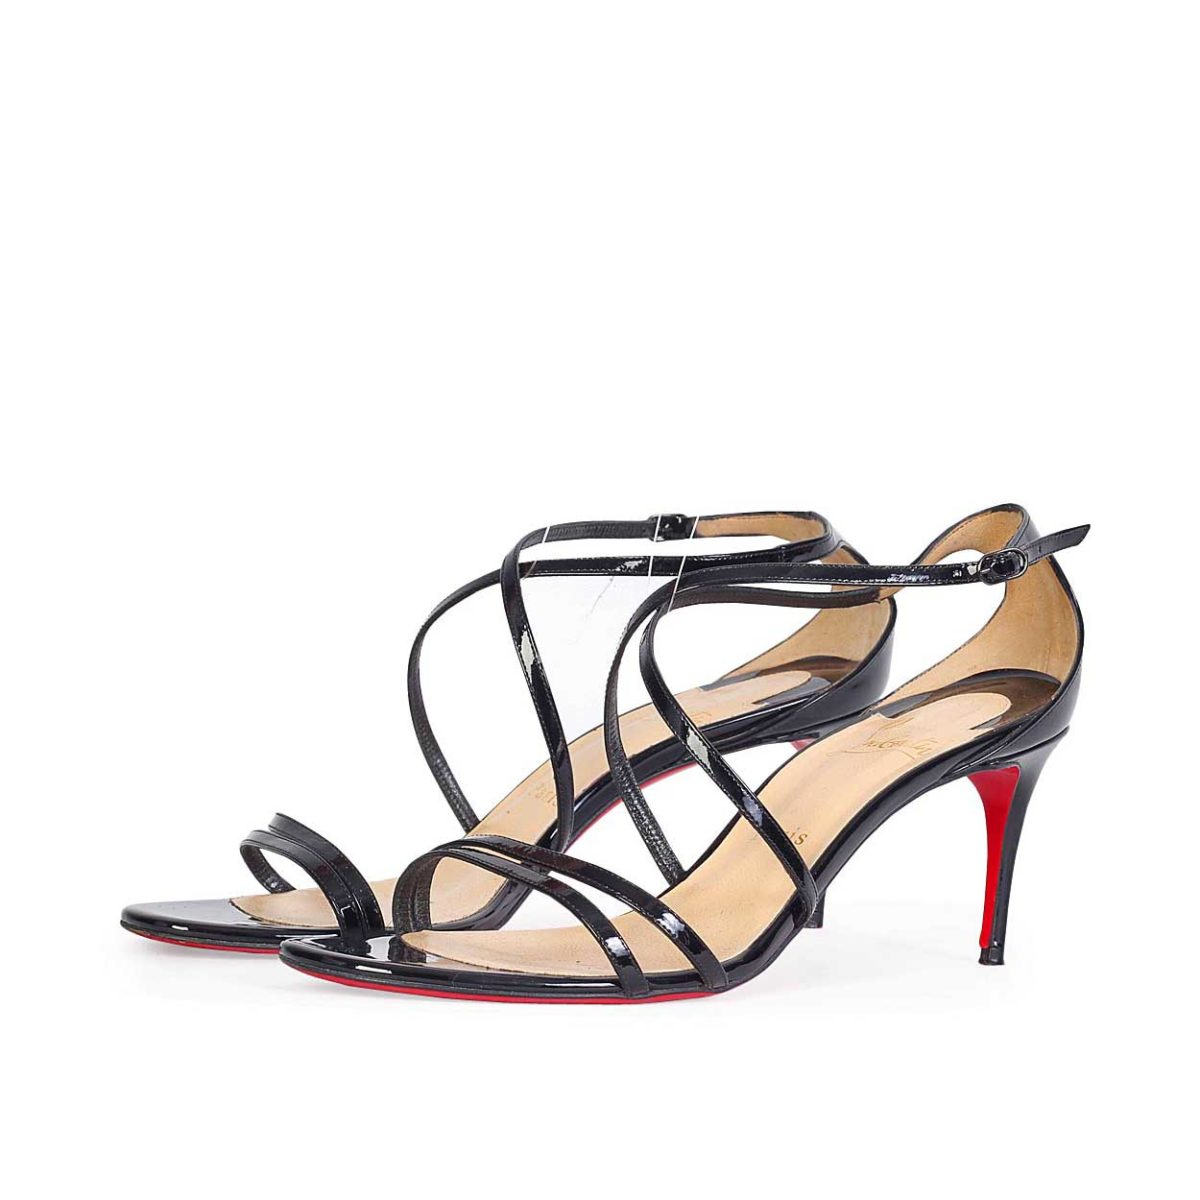 14784f049a8 CHRISTIAN LOUBOUTIN Patent Leather Gwynitta 100 Strappy Sandals - S ...